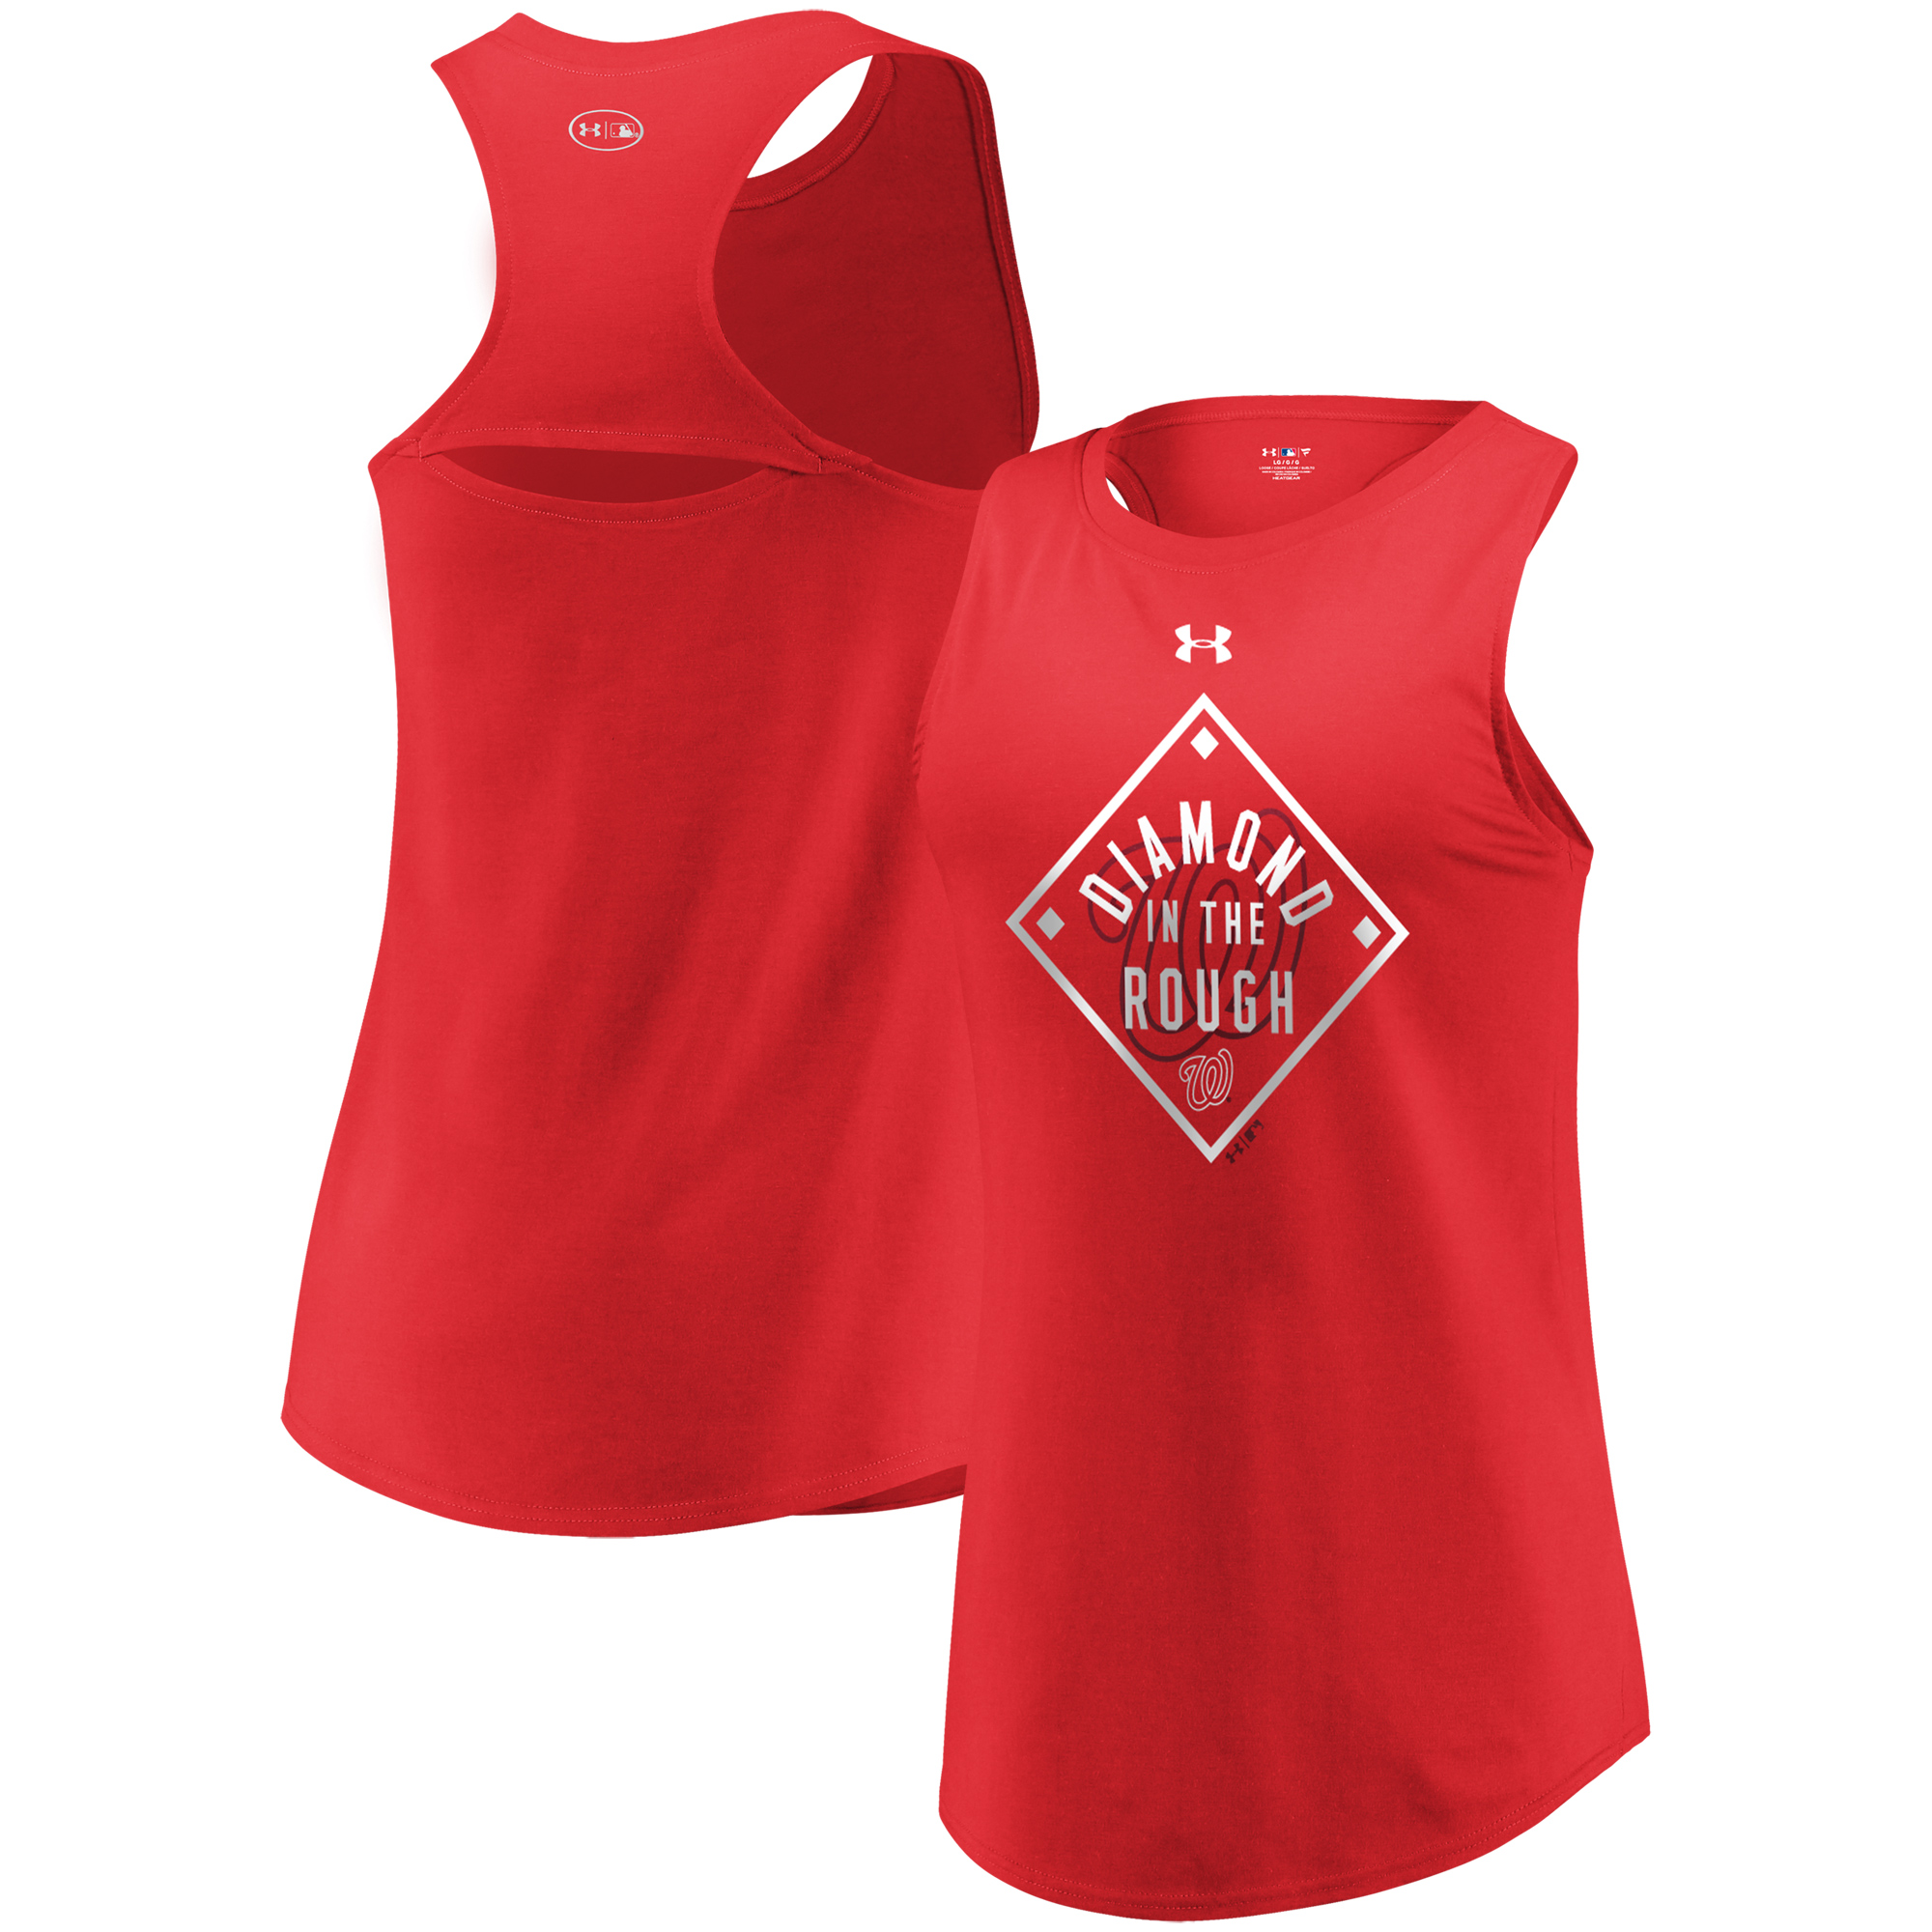 Washington Nationals Under Armour Women's Passion Diamond Tri-Blend Performance Tank Top - Red